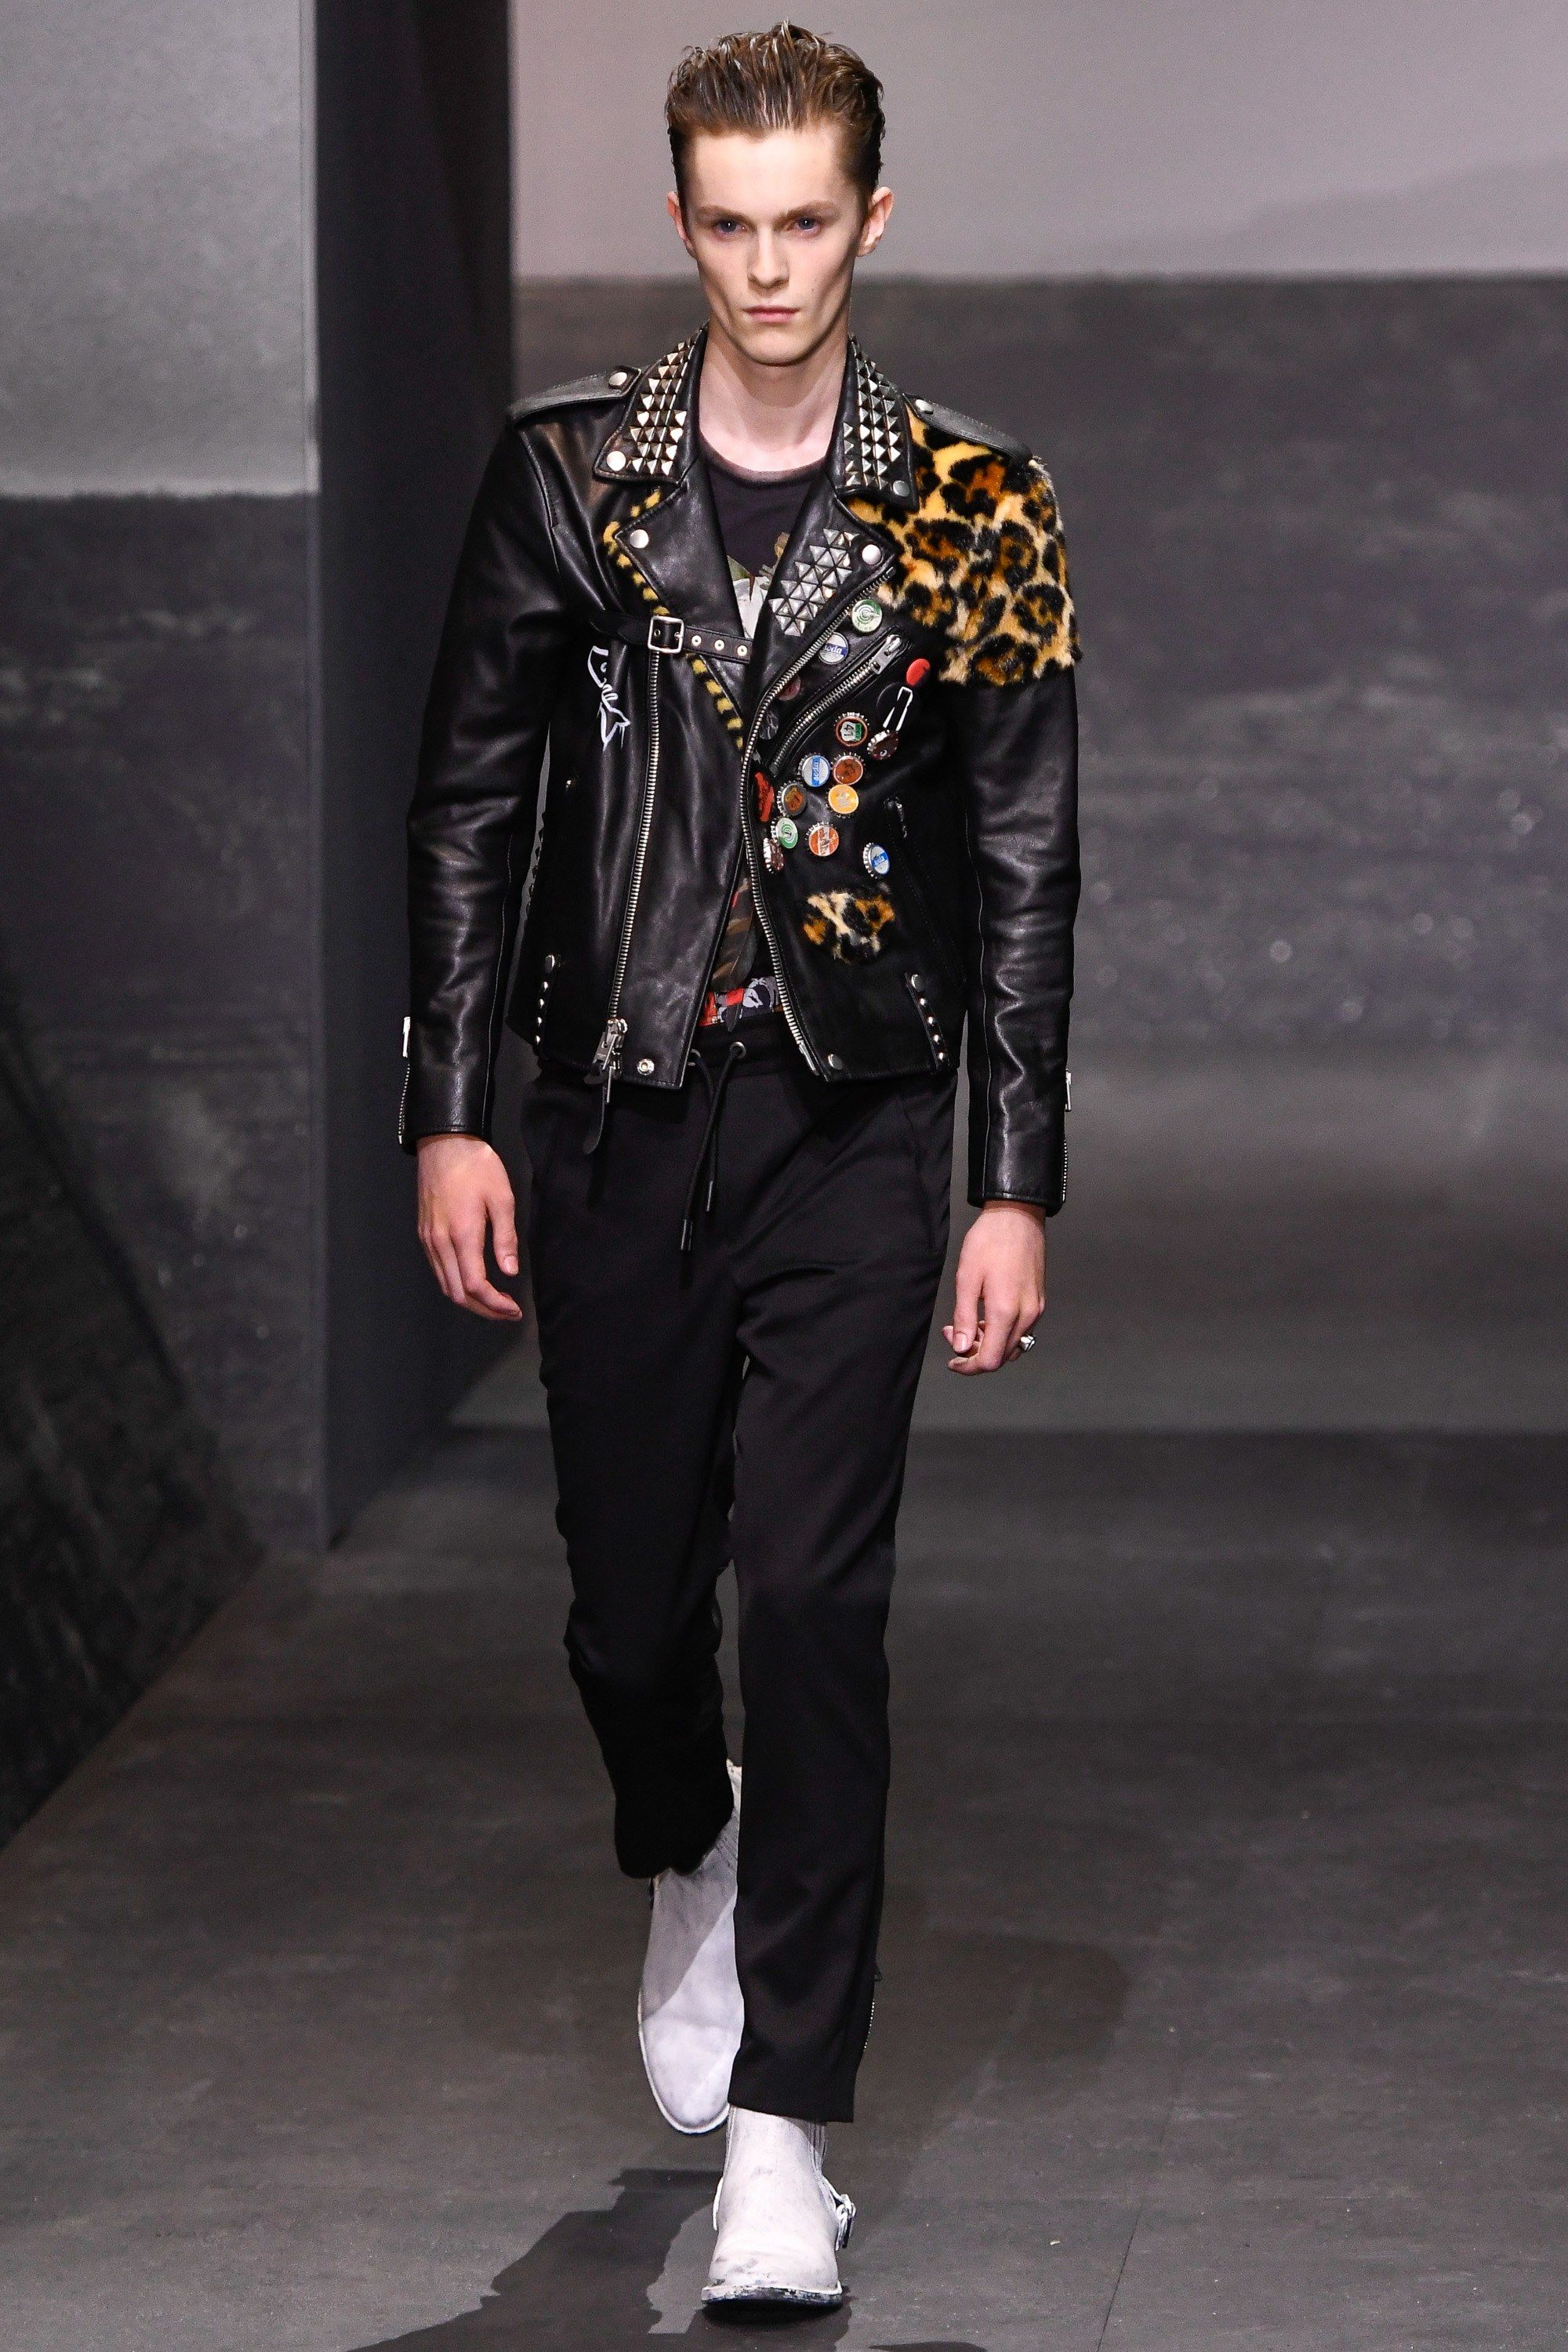 Leather jacket in summer - Coach 1941 Spring 2017 Menswear Collection Photos Vogue